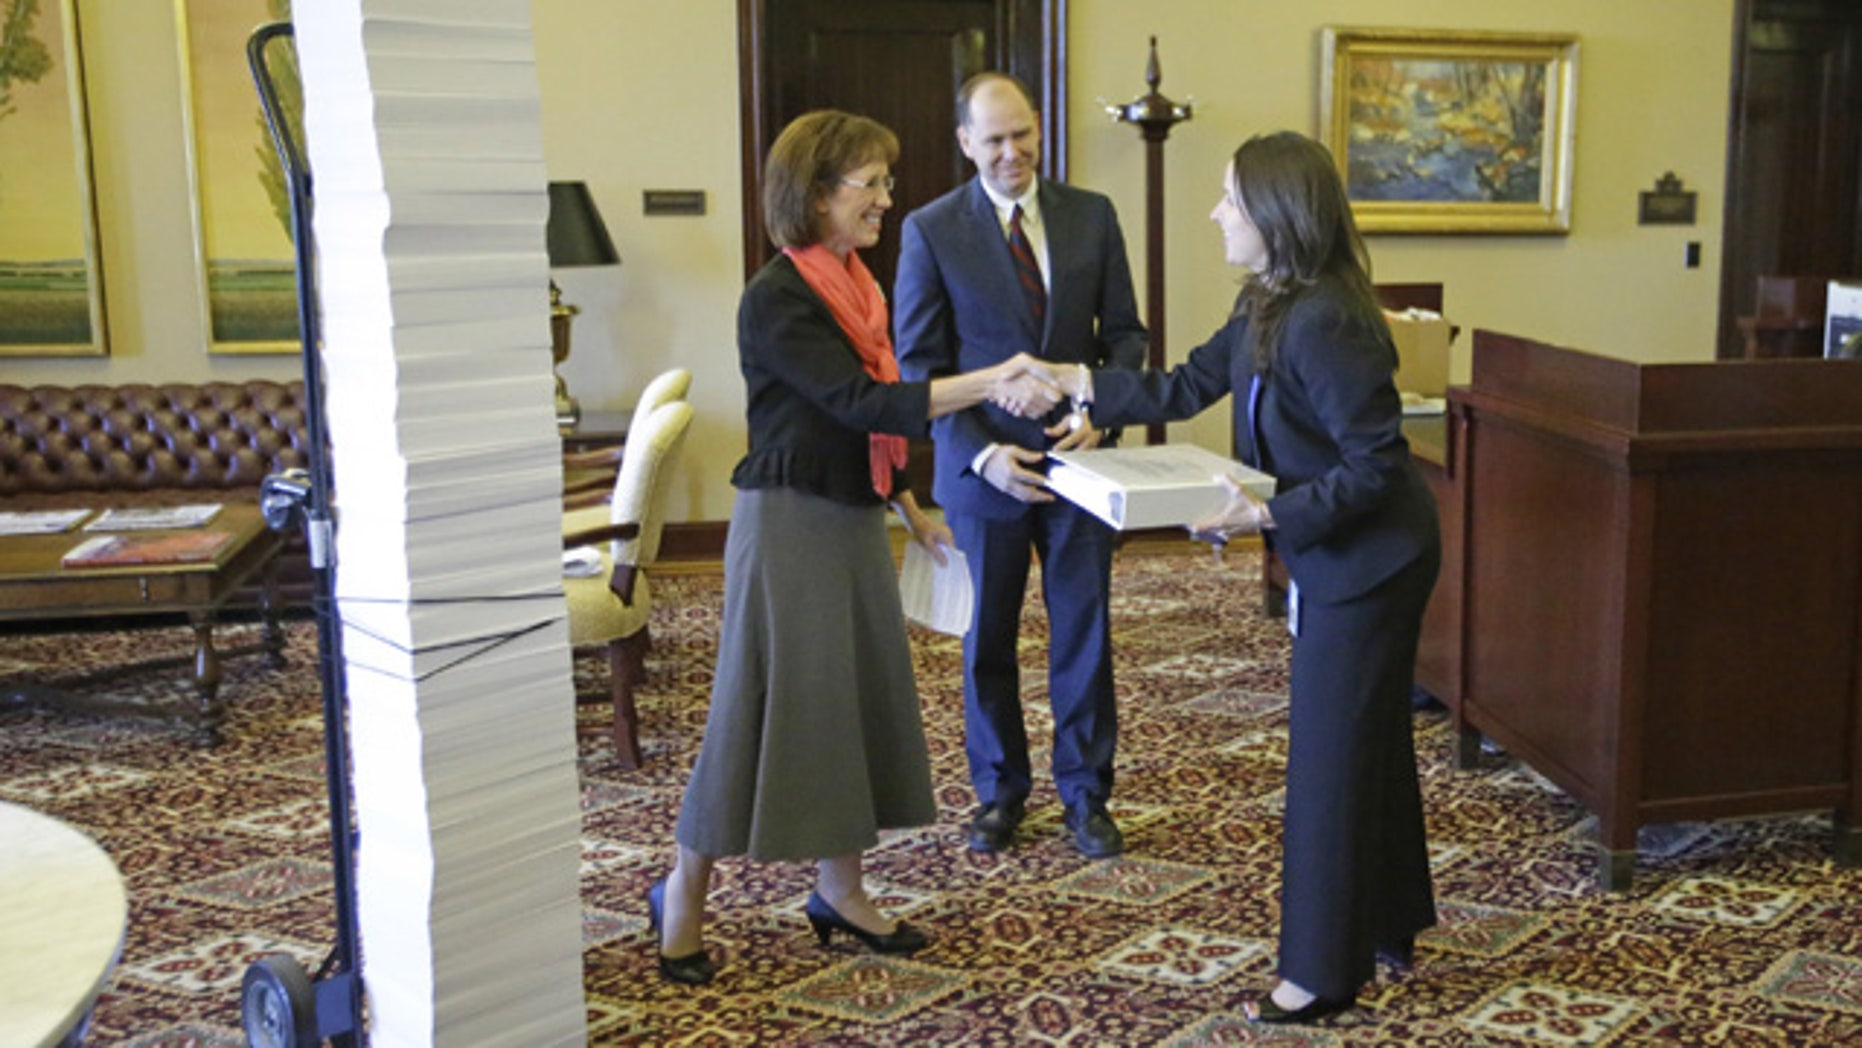 September 5, 2014: Opponents of same-sex marriage Laura Bunker, left, with the United Families International and Bill Duncan, of the Sutherland Institute, give Tiffany Clason, right, an employee of Gov. Gary Herbert's office, a list of 18,600 names of people who signed online petitions supporting traditional marriage and Utah's defense of its gay marriage ban during a meeting at the Utah State Capitol in Salt Lake City. (AP Photo/Rick Bowmer)